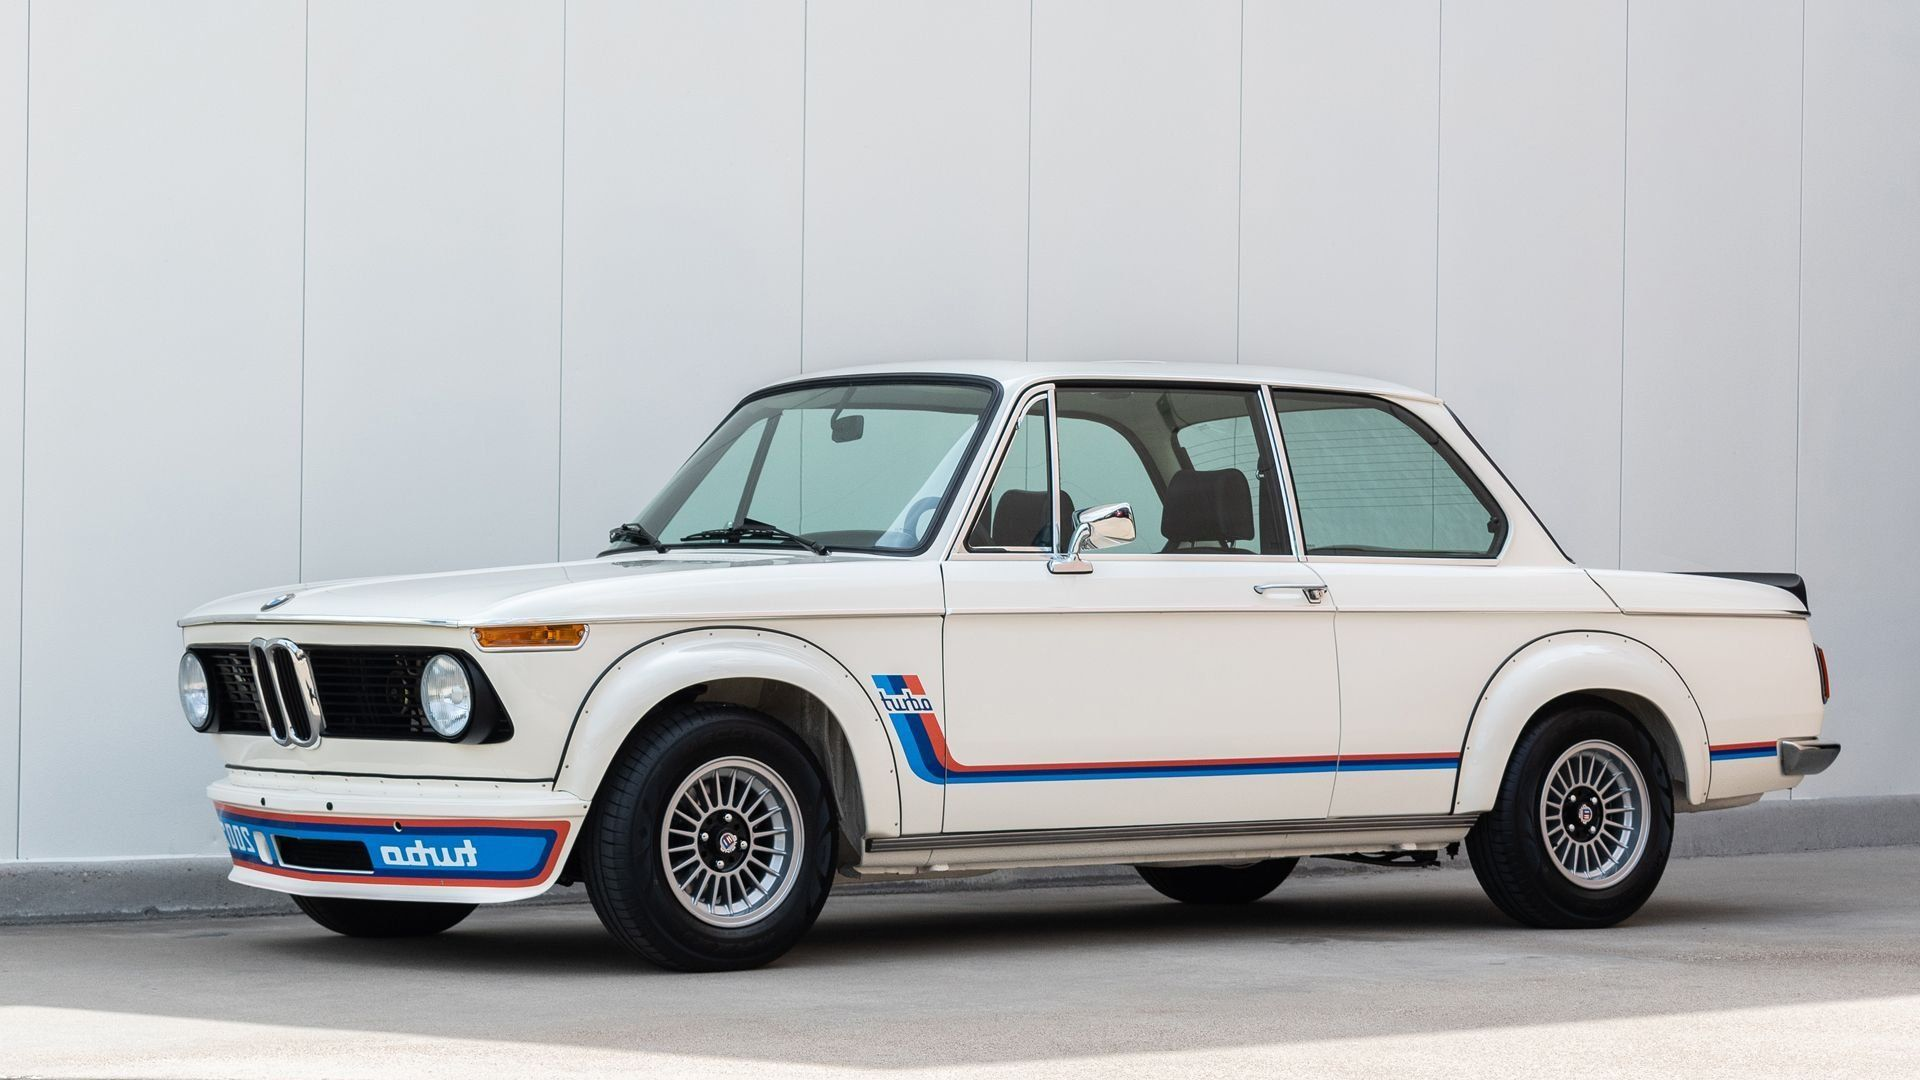 Legendary 1974 Bmw 2002 Turbo Seeks New Driver